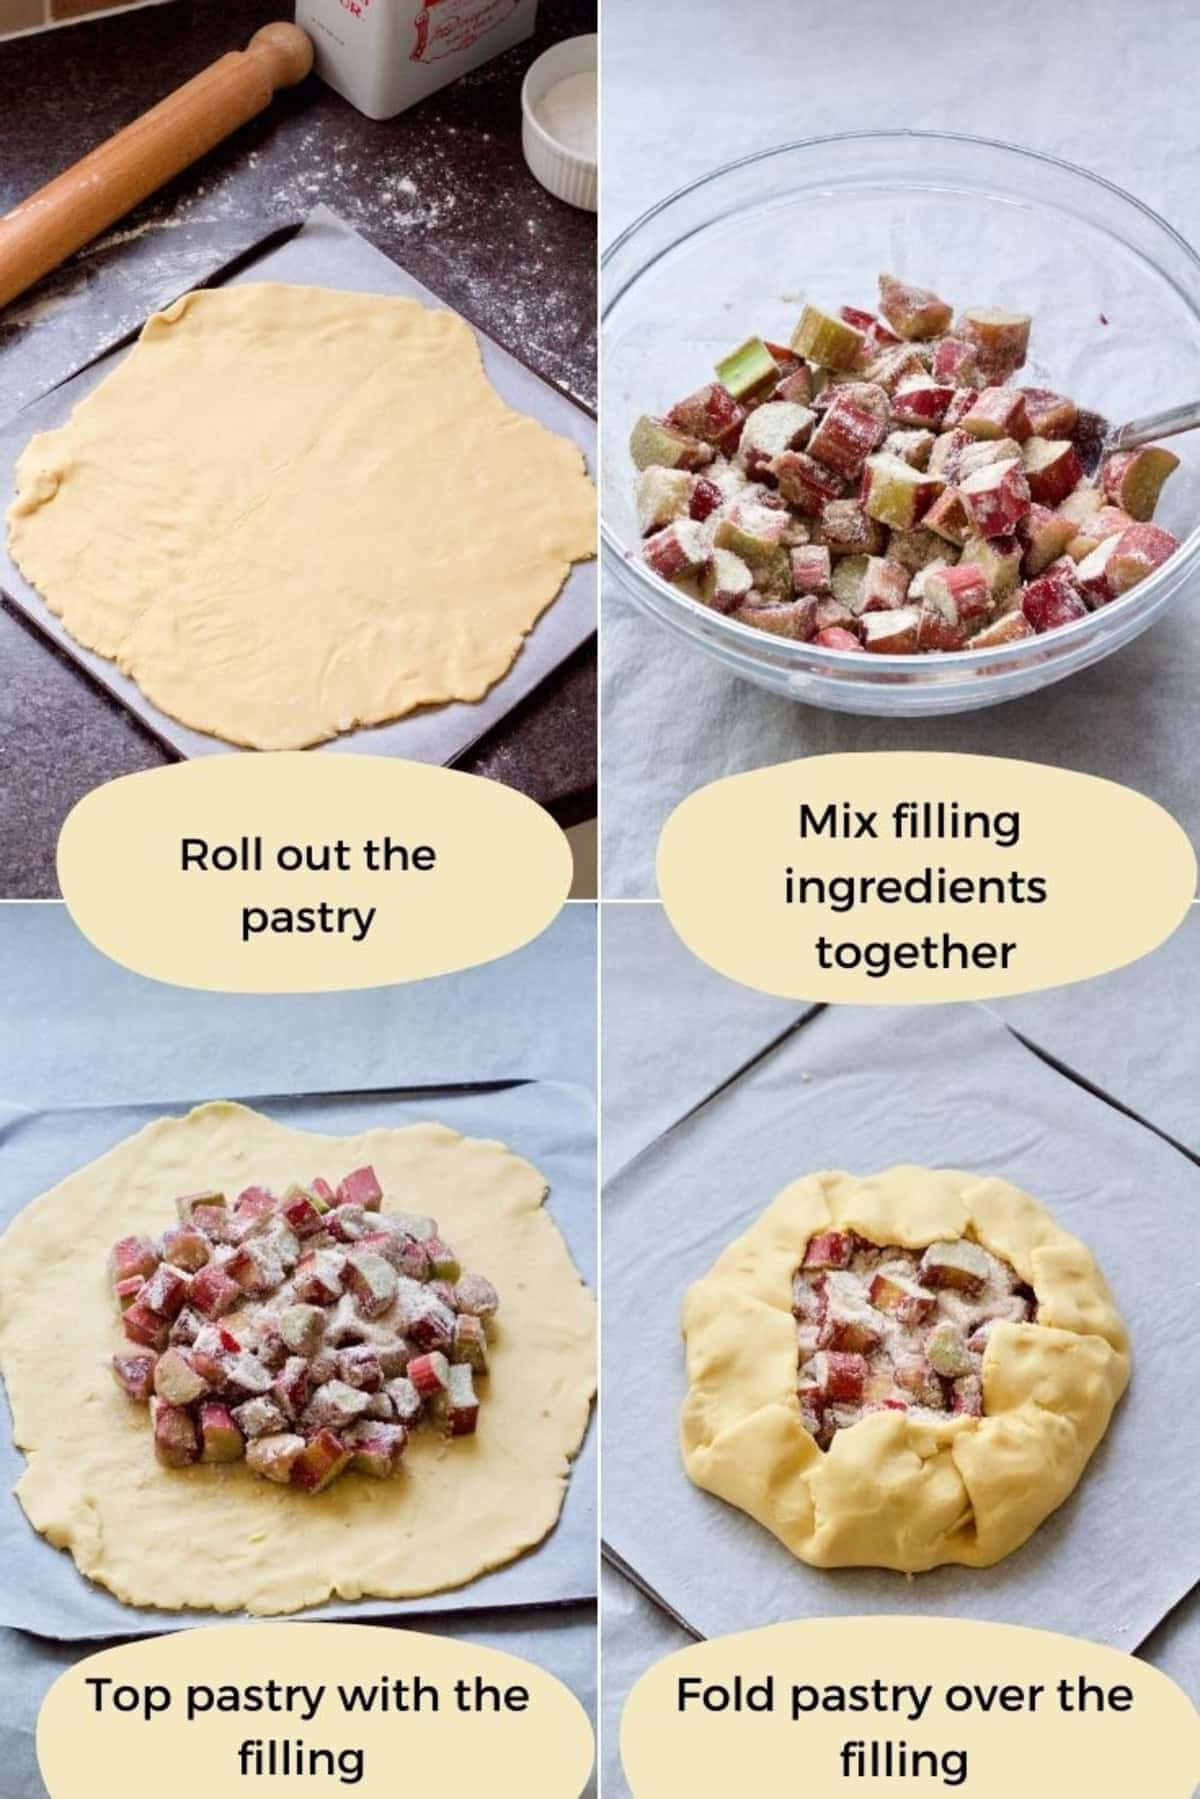 Assembly process for making galette.